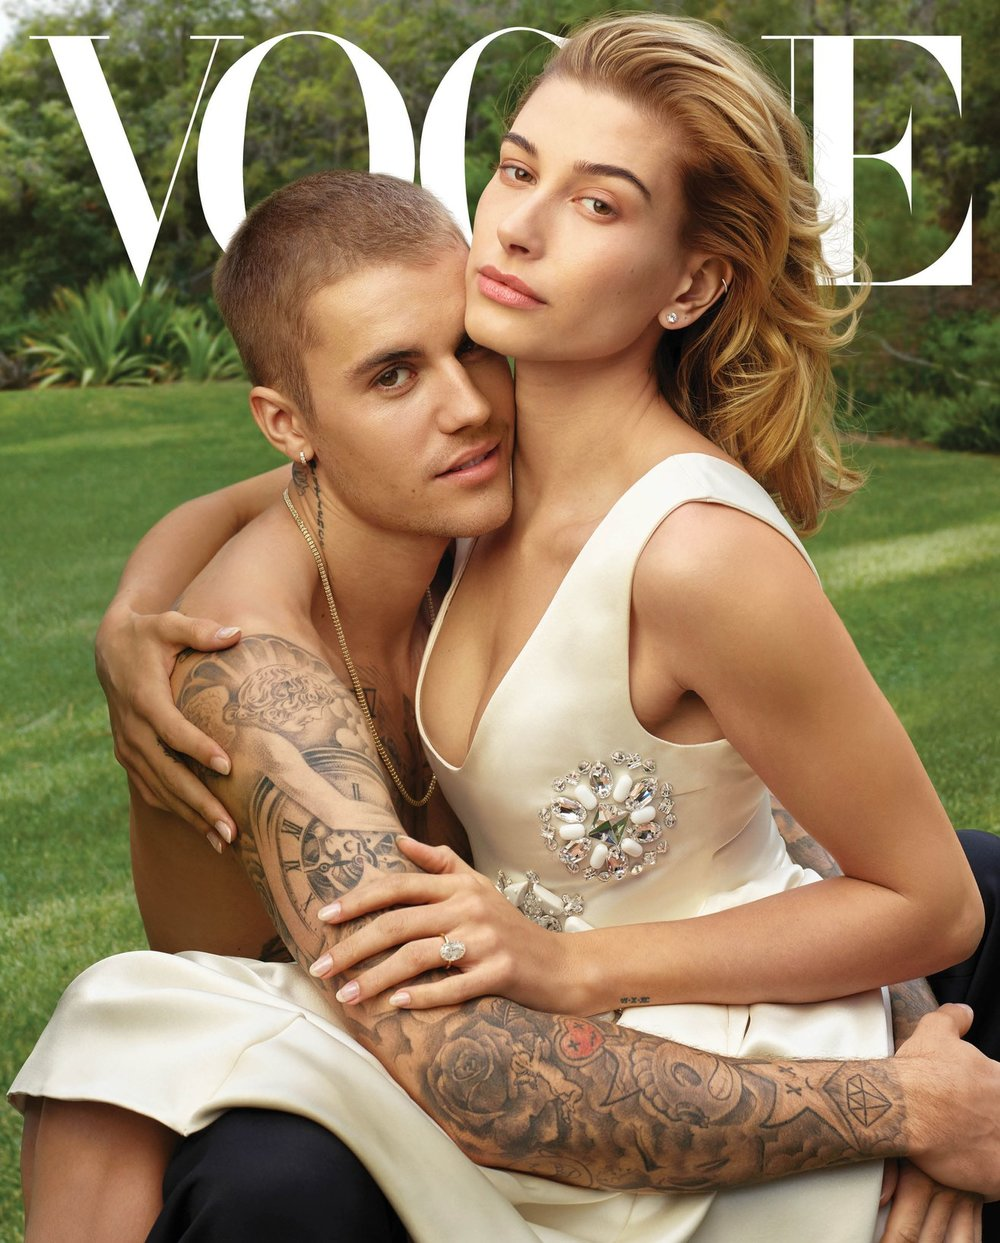 justin-bieber-hailey-bieber-vogue-cover-march-2019-08.jpg